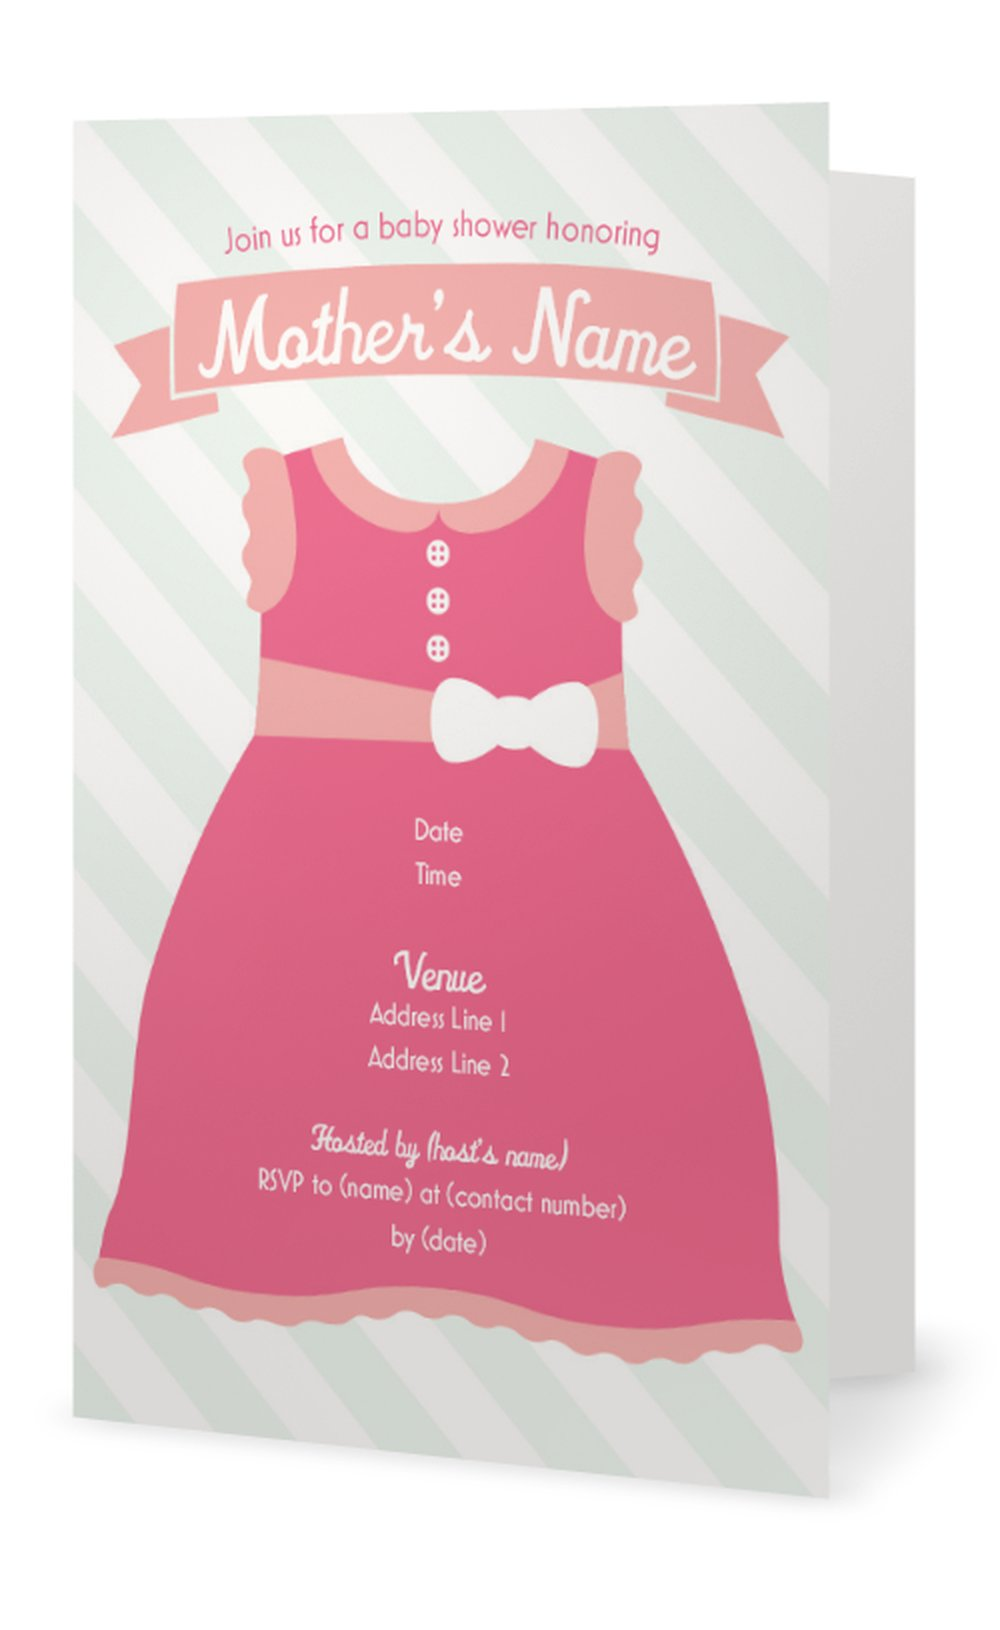 Vistaprint Baby Shower Invitations is one of our best ideas you might choose for invitation design